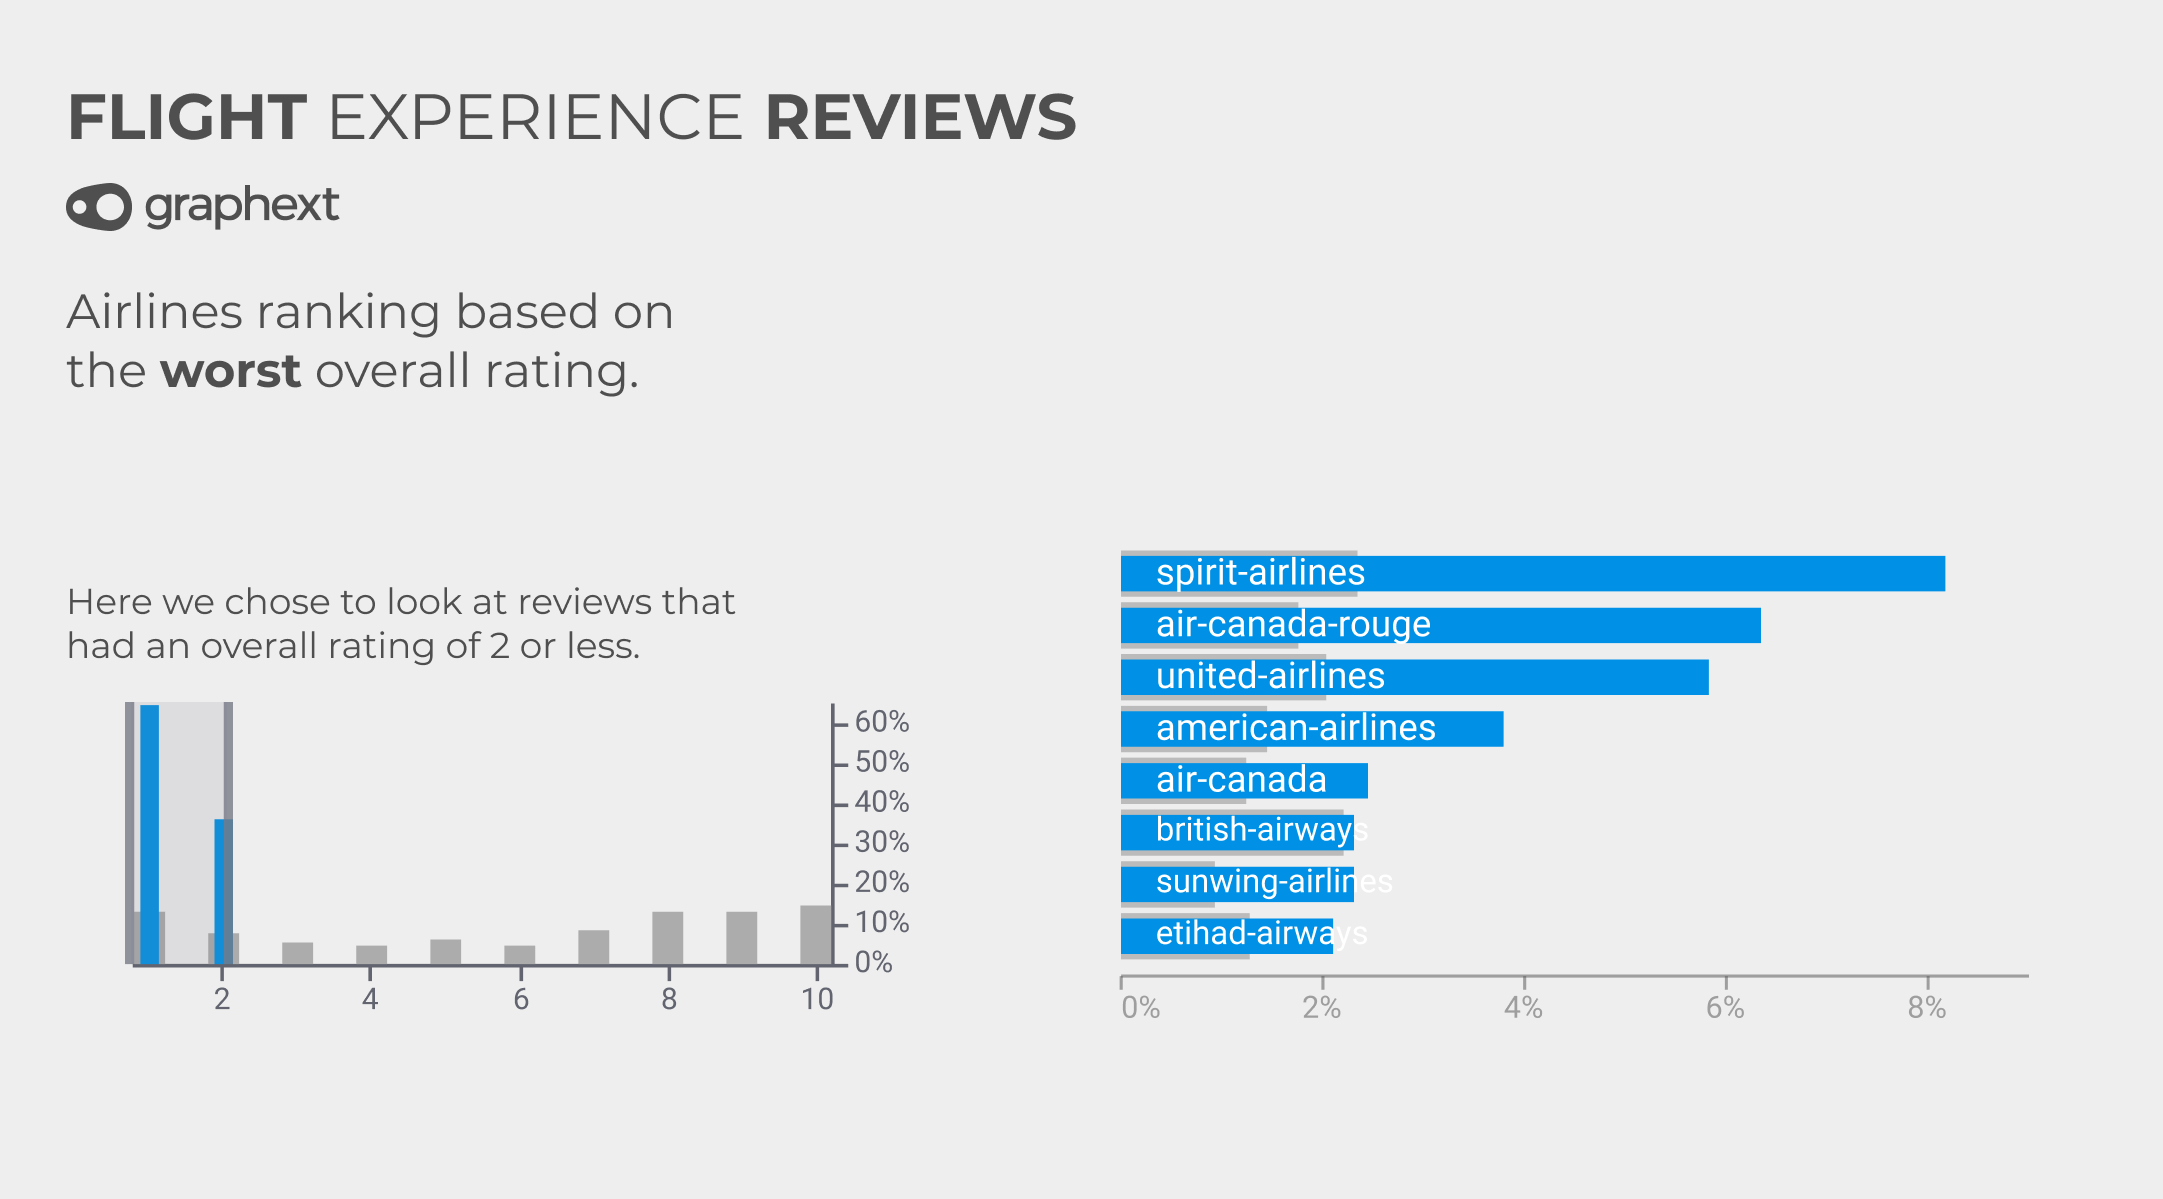 A chart showing the airlines with the worst review ratings.